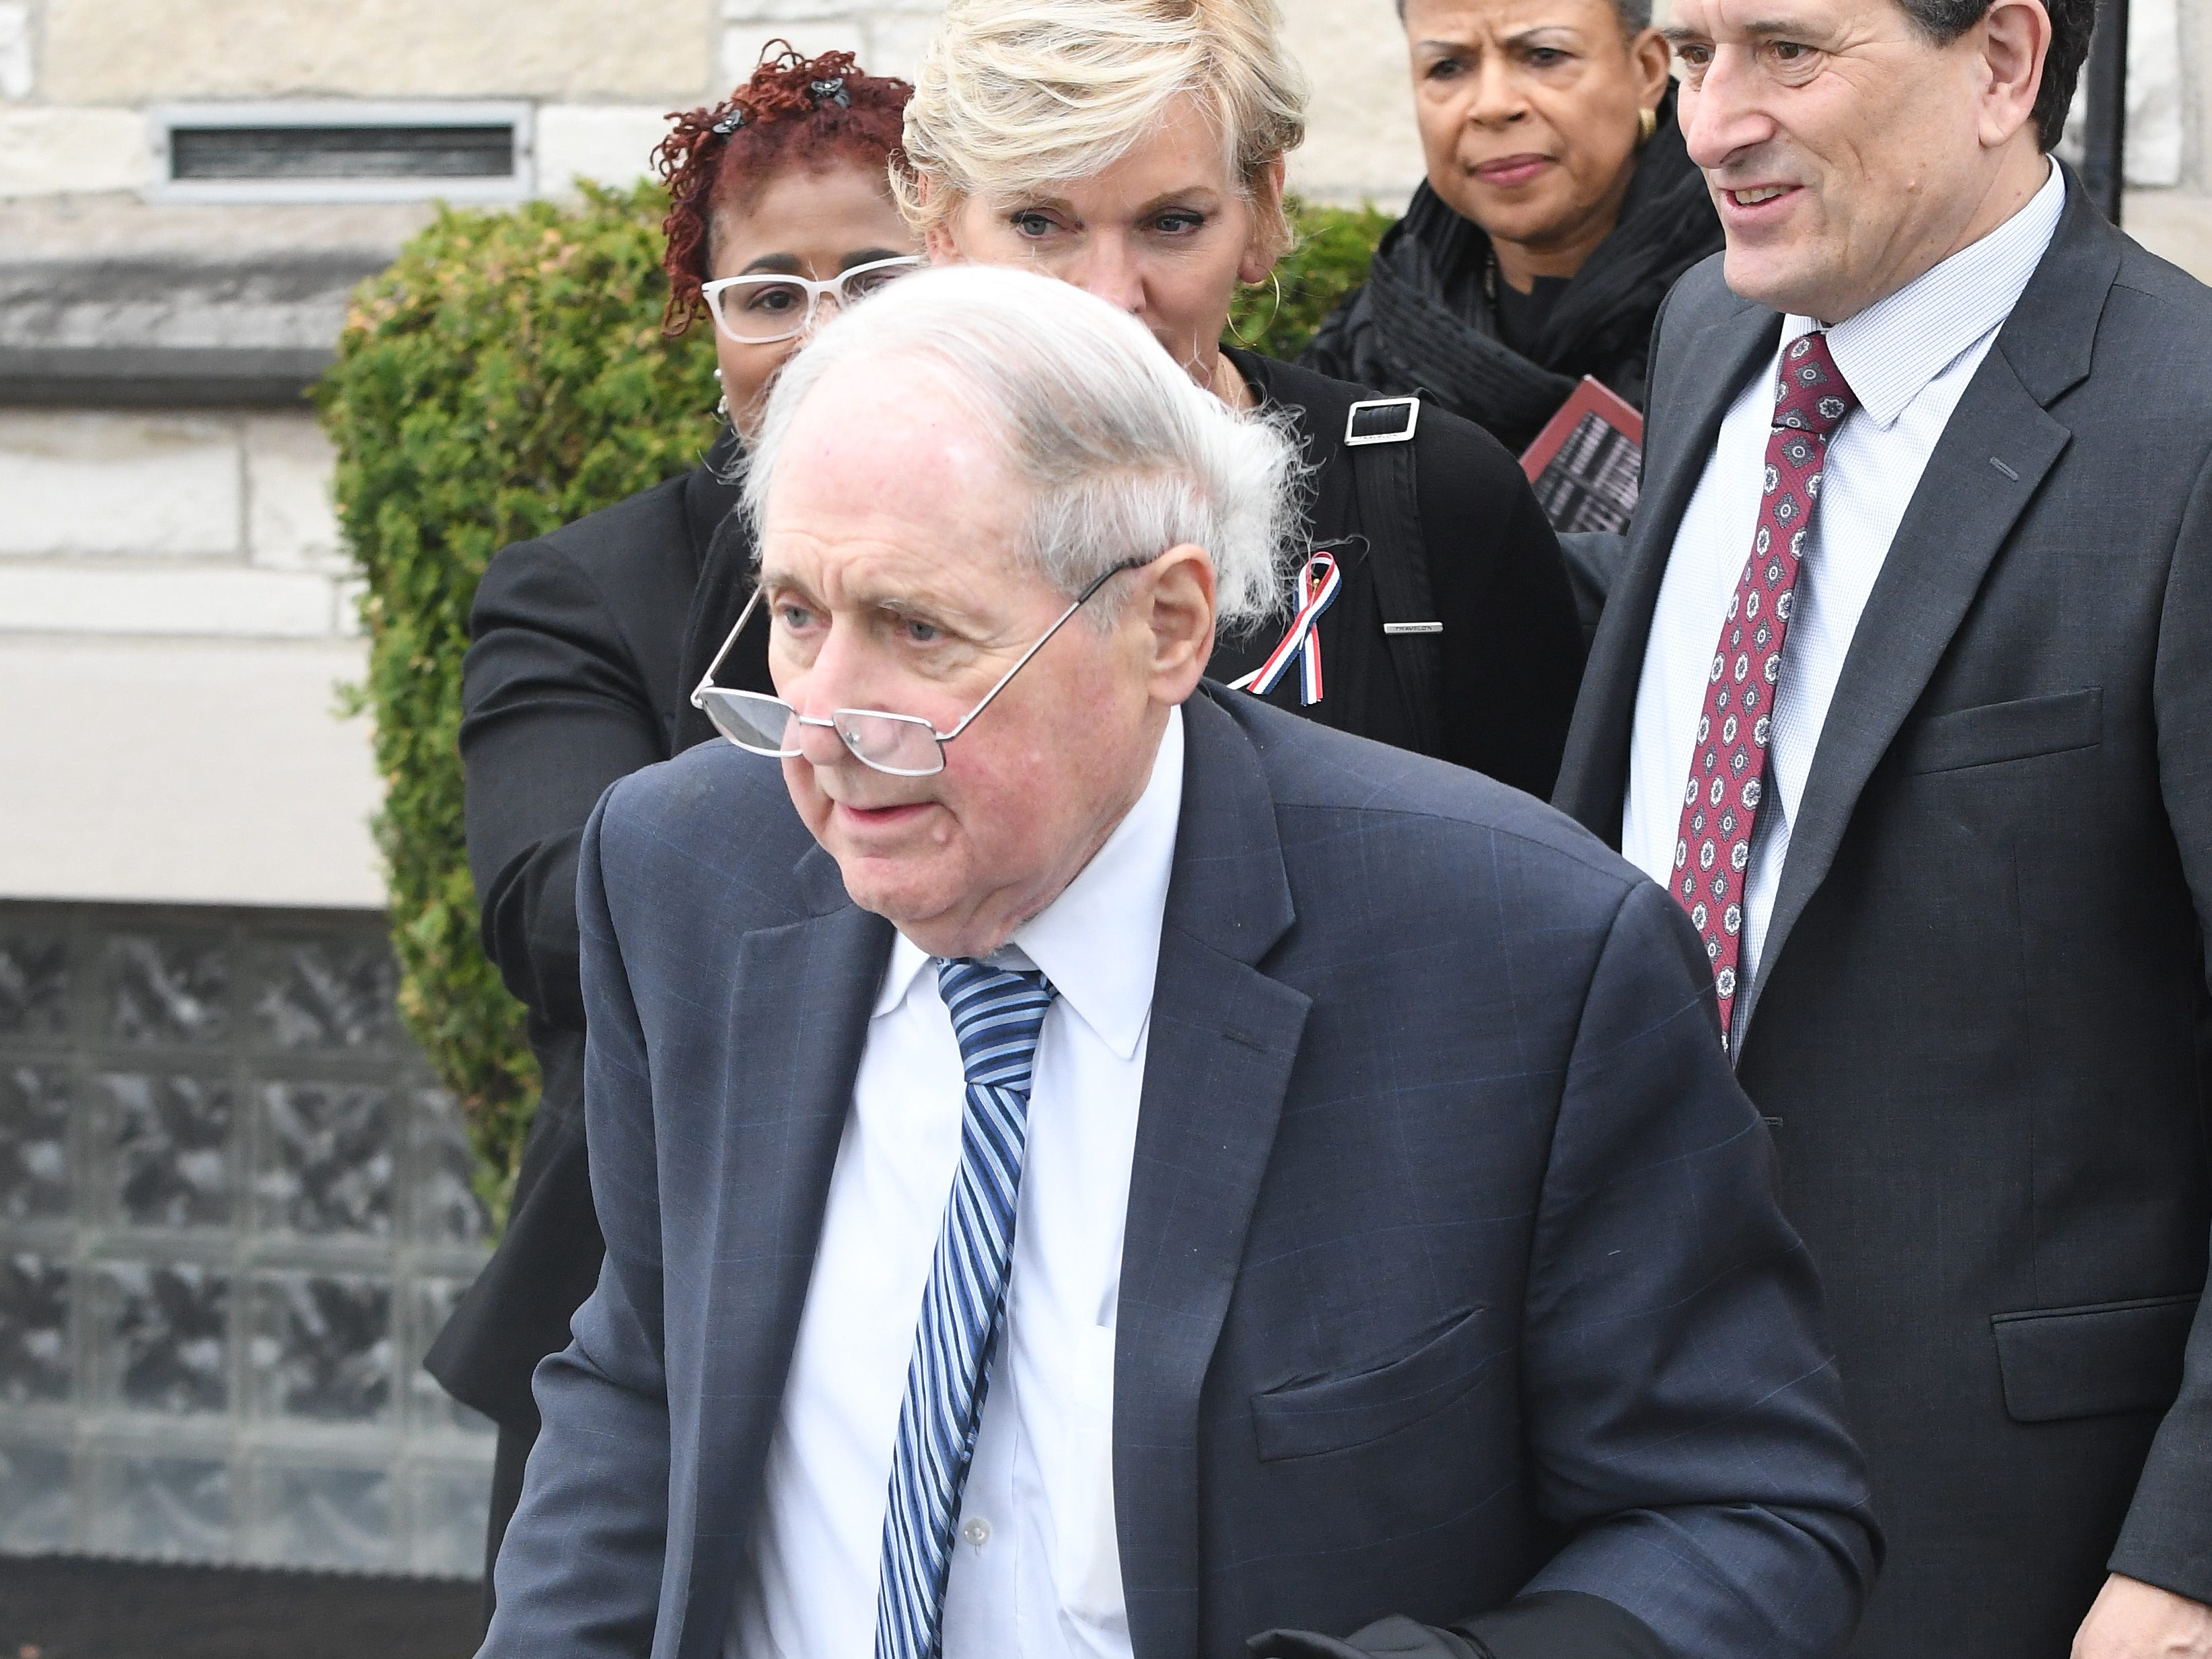 Former Senator Carl Levin leaves the church after the funeral of Judge Damon Keith.